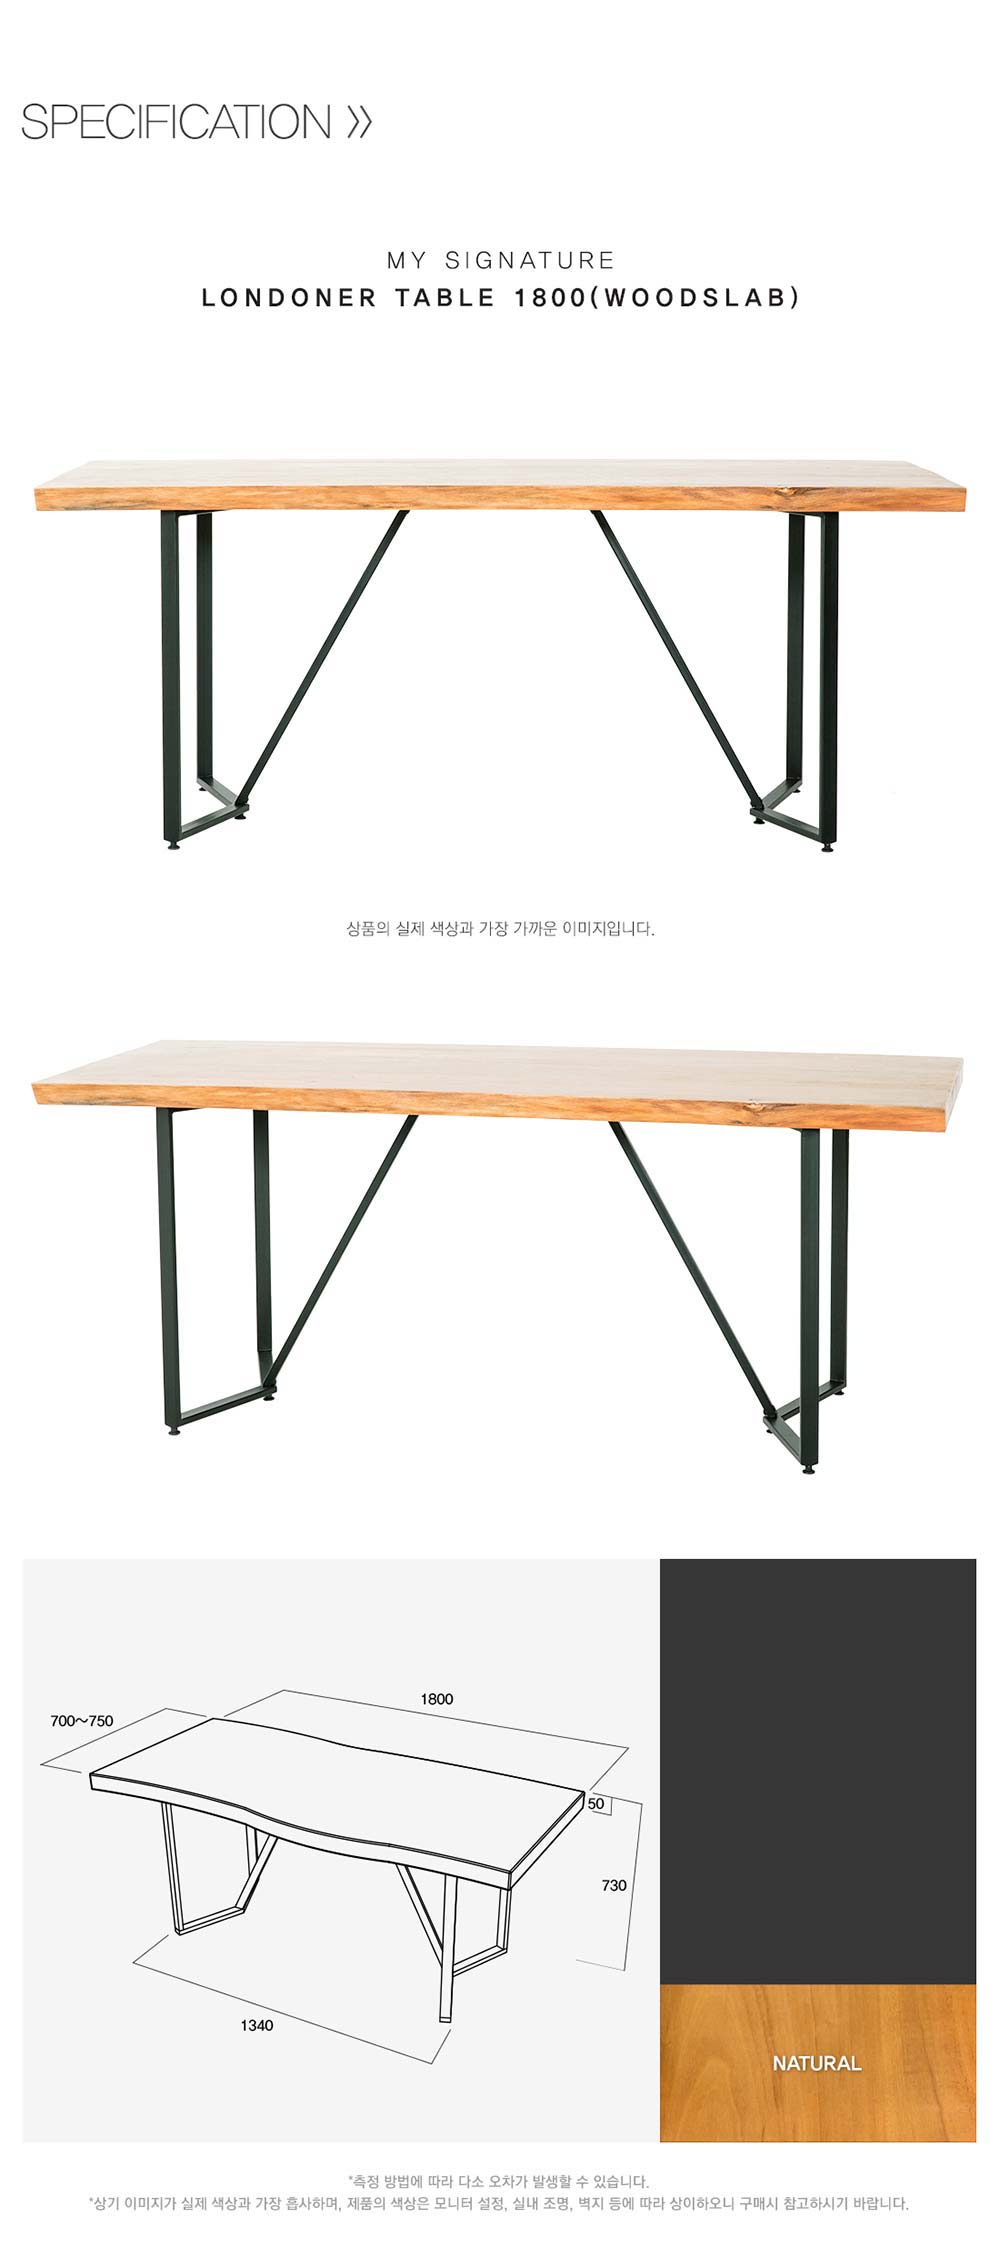 Londoner_Kinfolk_Industrial_Dining_Table_1800_(Woodslab)_Online_Furniture_Singapore_Specs_by_born_in_colour